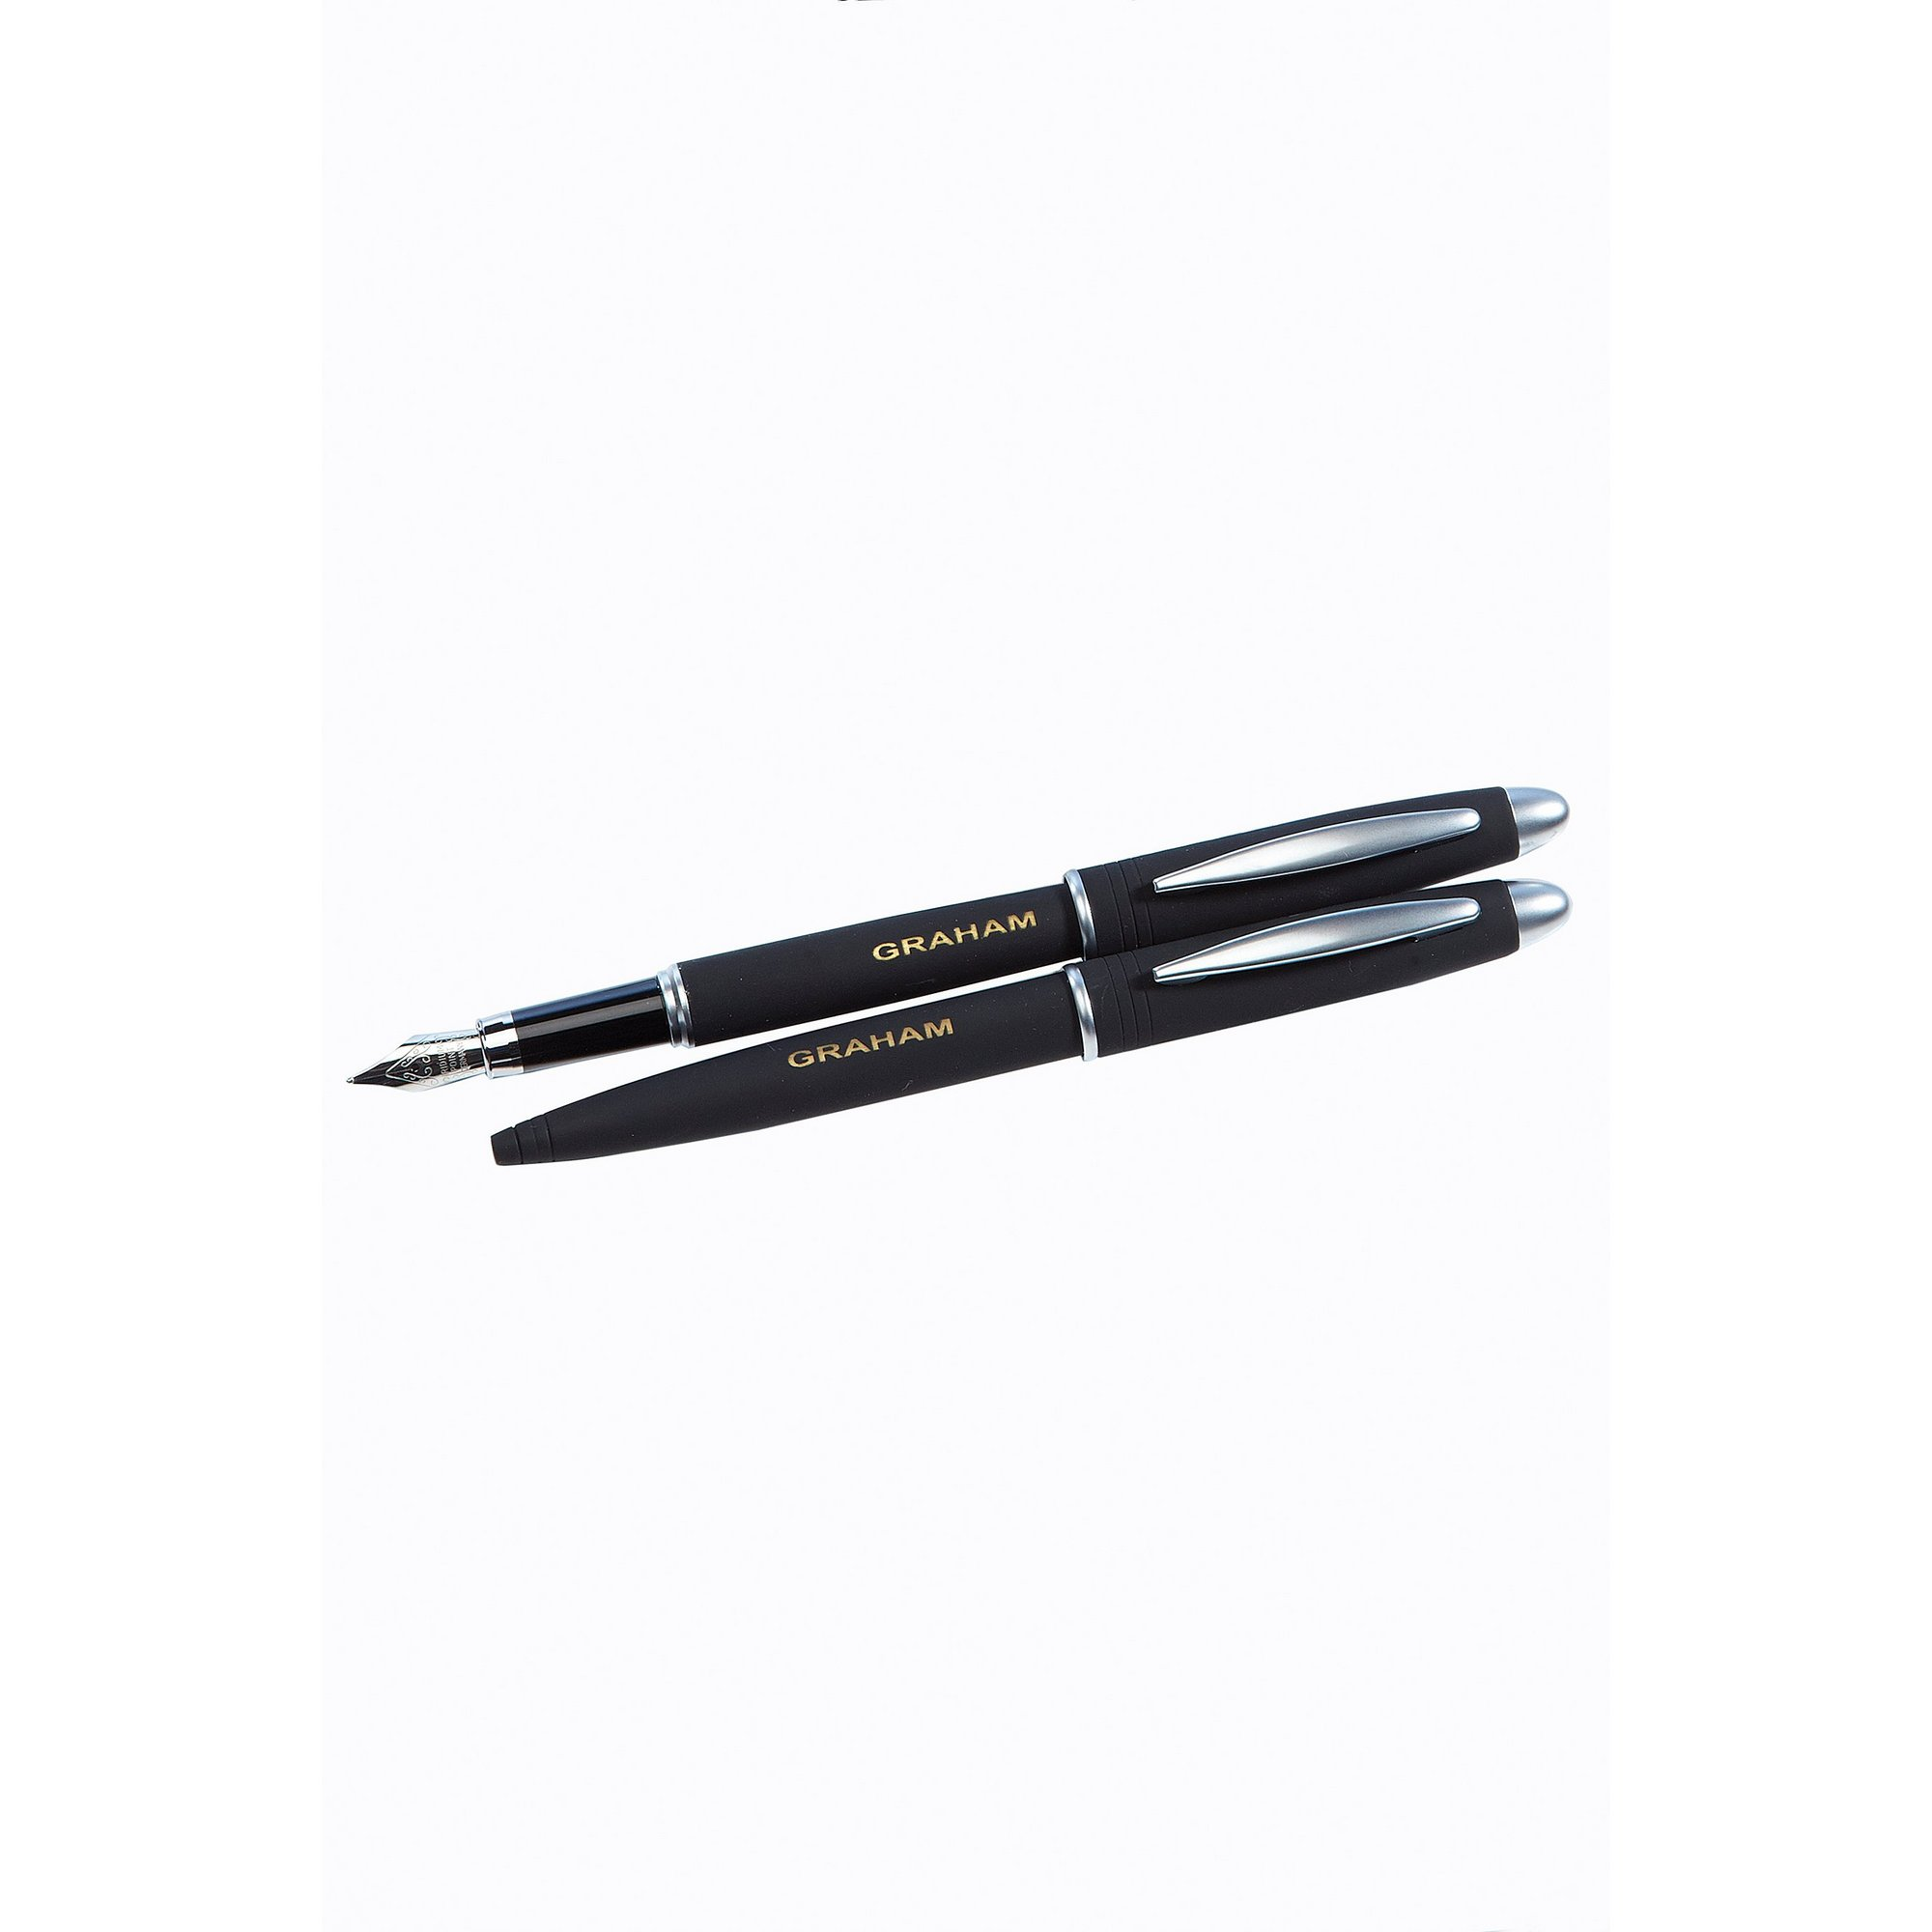 Image of Personalised 2-Piece Pen Set